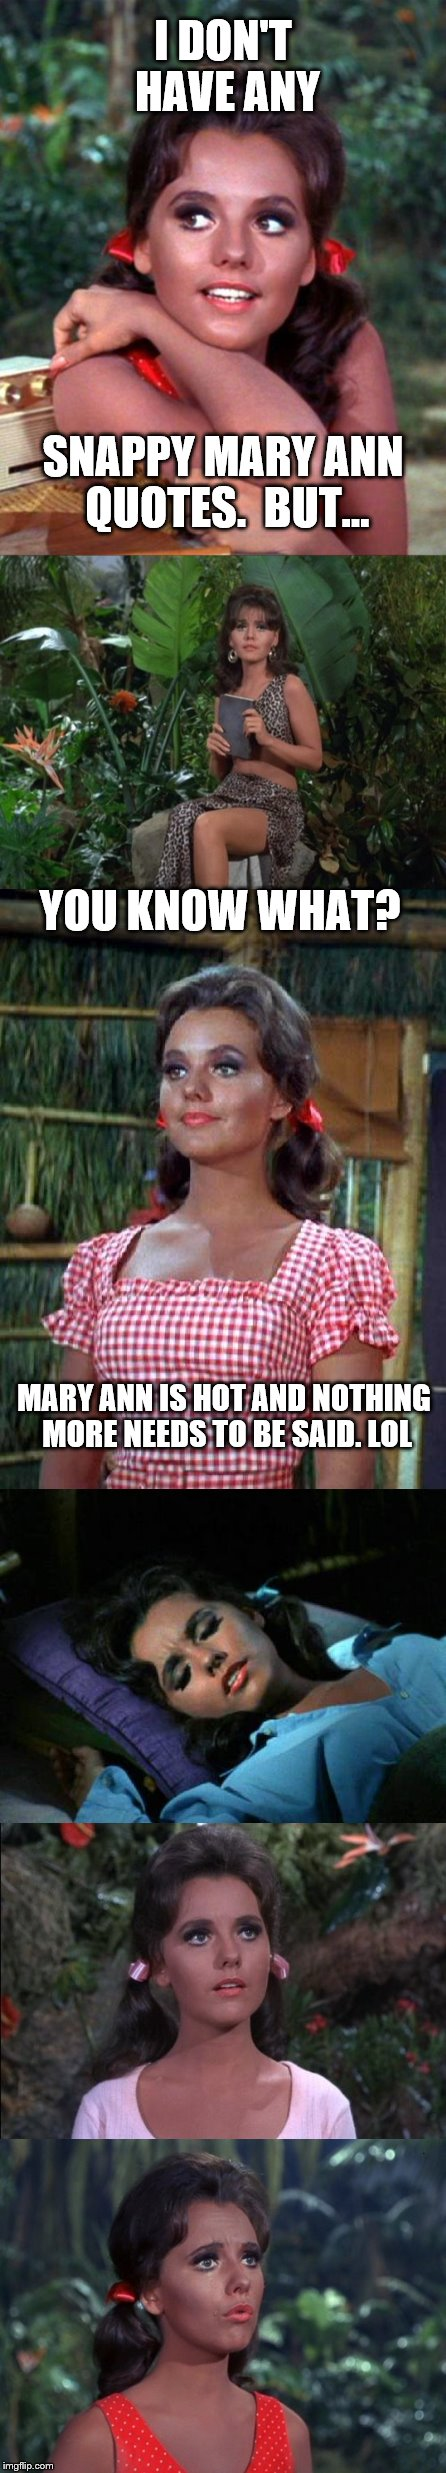 OH YEAH! | I DON'T HAVE ANY SNAPPY MARY ANN QUOTES.  BUT... YOU KNOW WHAT? MARY ANN IS HOT AND NOTHING MORE NEEDS TO BE SAID. LOL | image tagged in mary ann summers,gilligan's island,sexy women | made w/ Imgflip meme maker